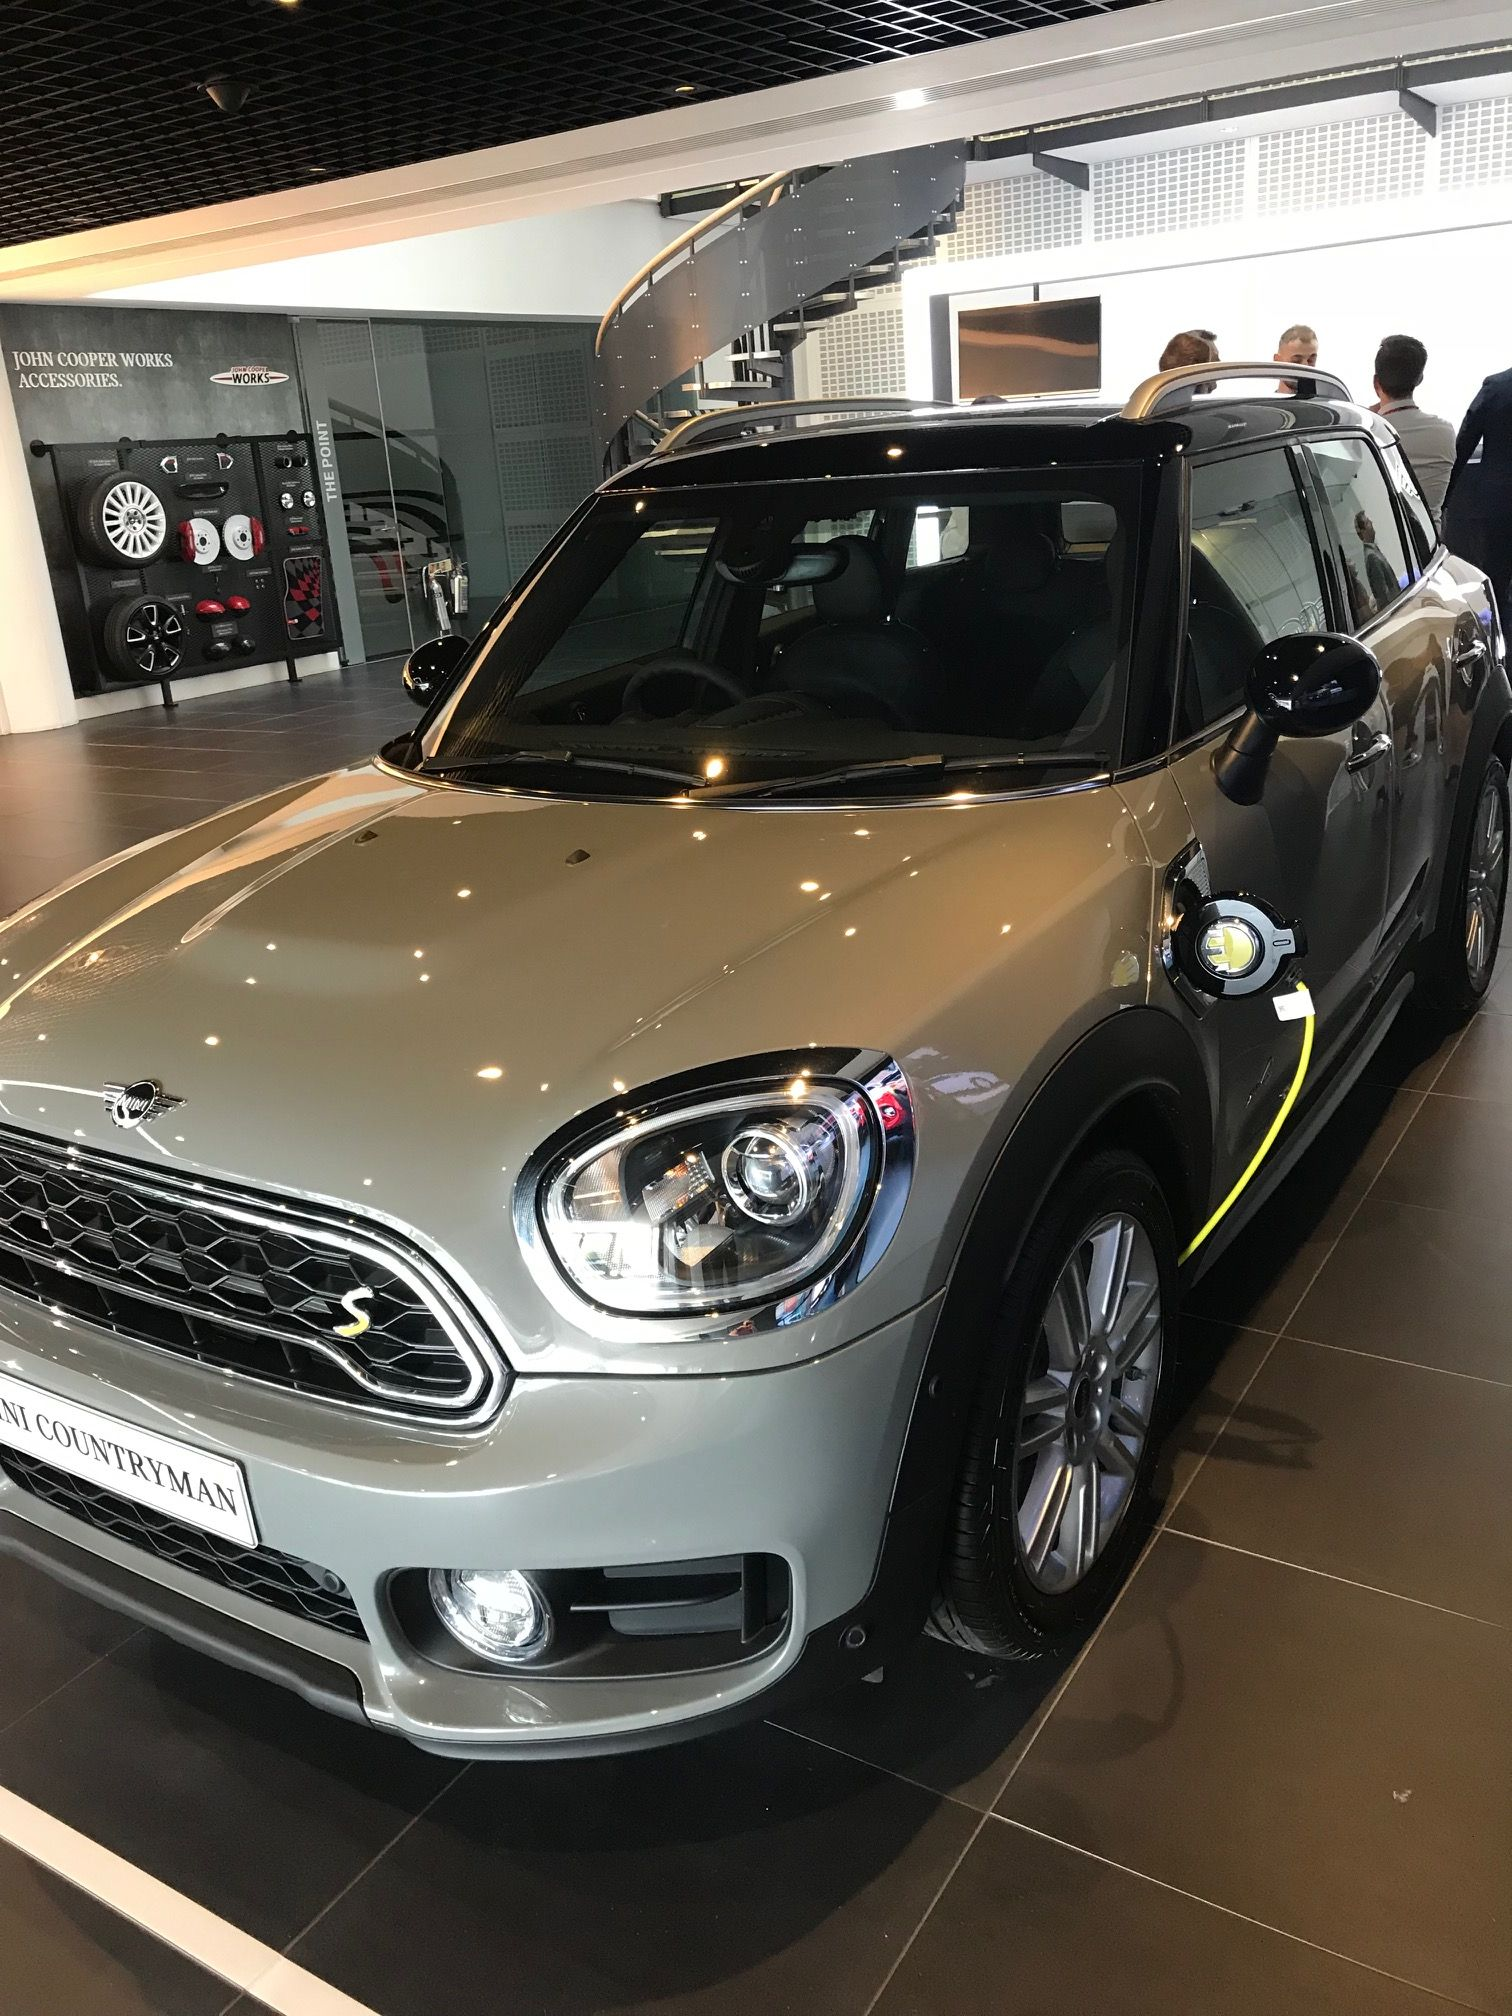 The Mini COUNTRYMAN HATCHBACK 1.5 Cooper S E Exclusive